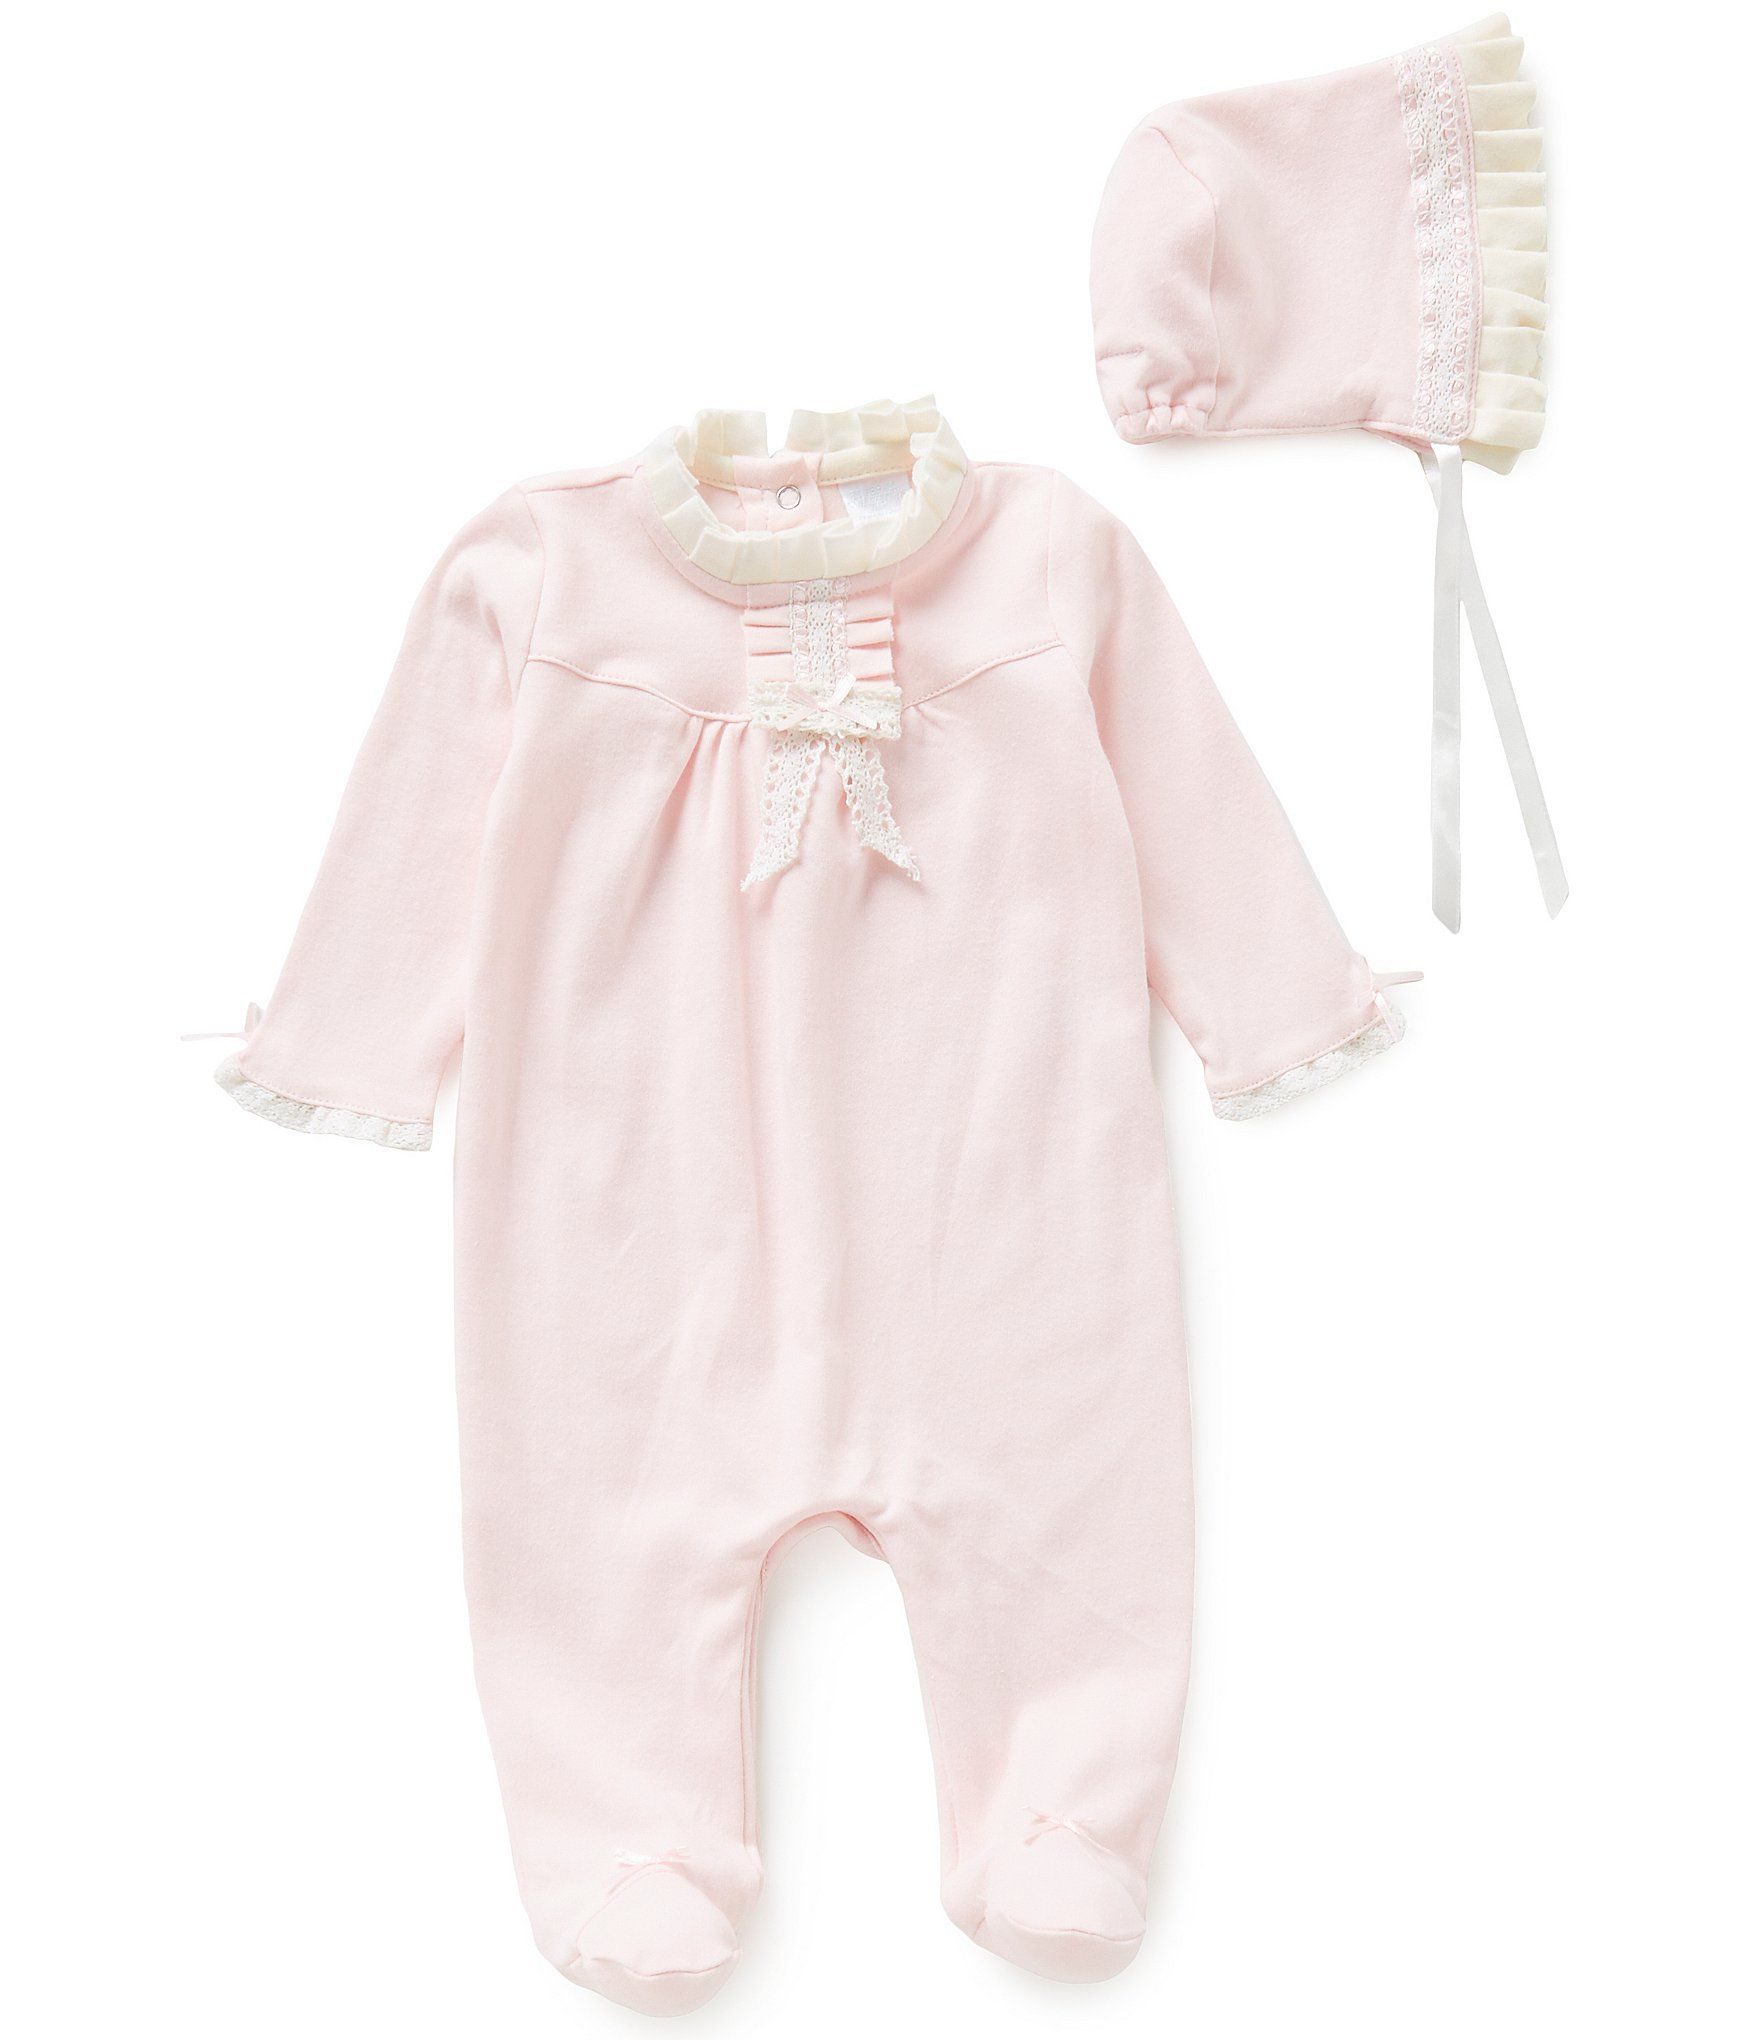 411dedfea Shop for Edgehill Collection Baby Girls Newborn-6 Months Ruffled ...